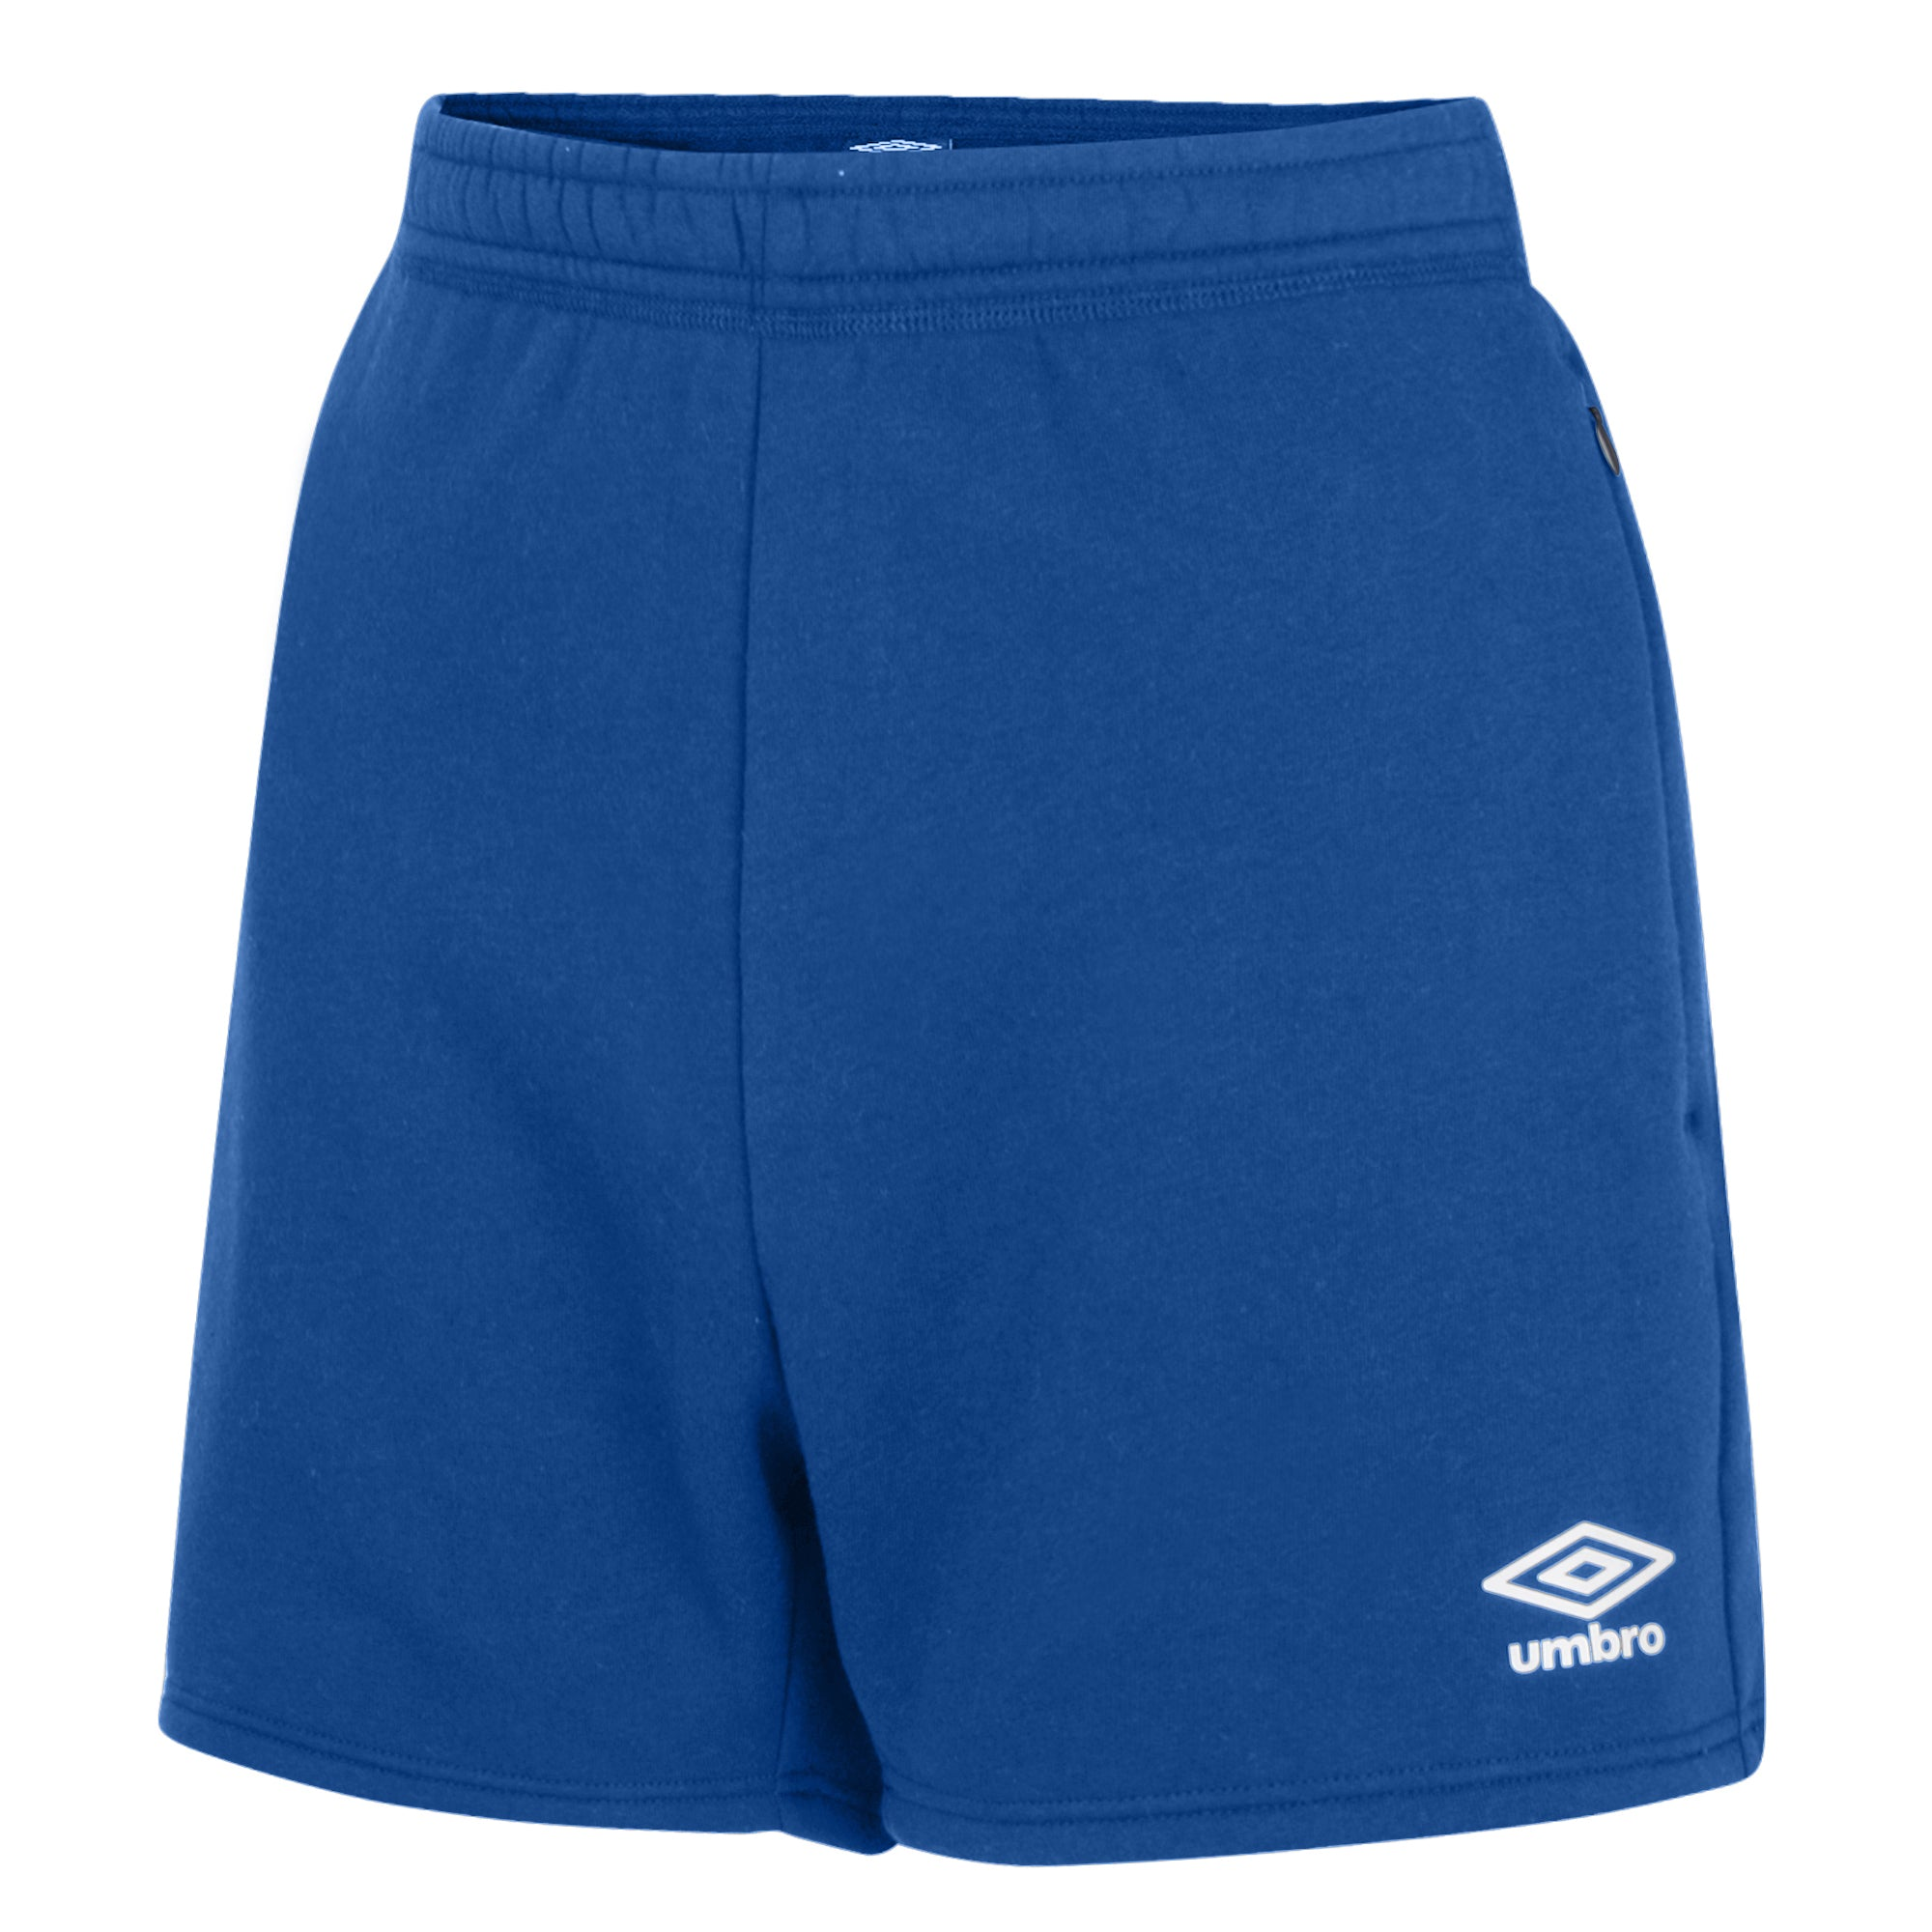 Umbro Club Leisure Women's Jog Shorts - TW Royal/White